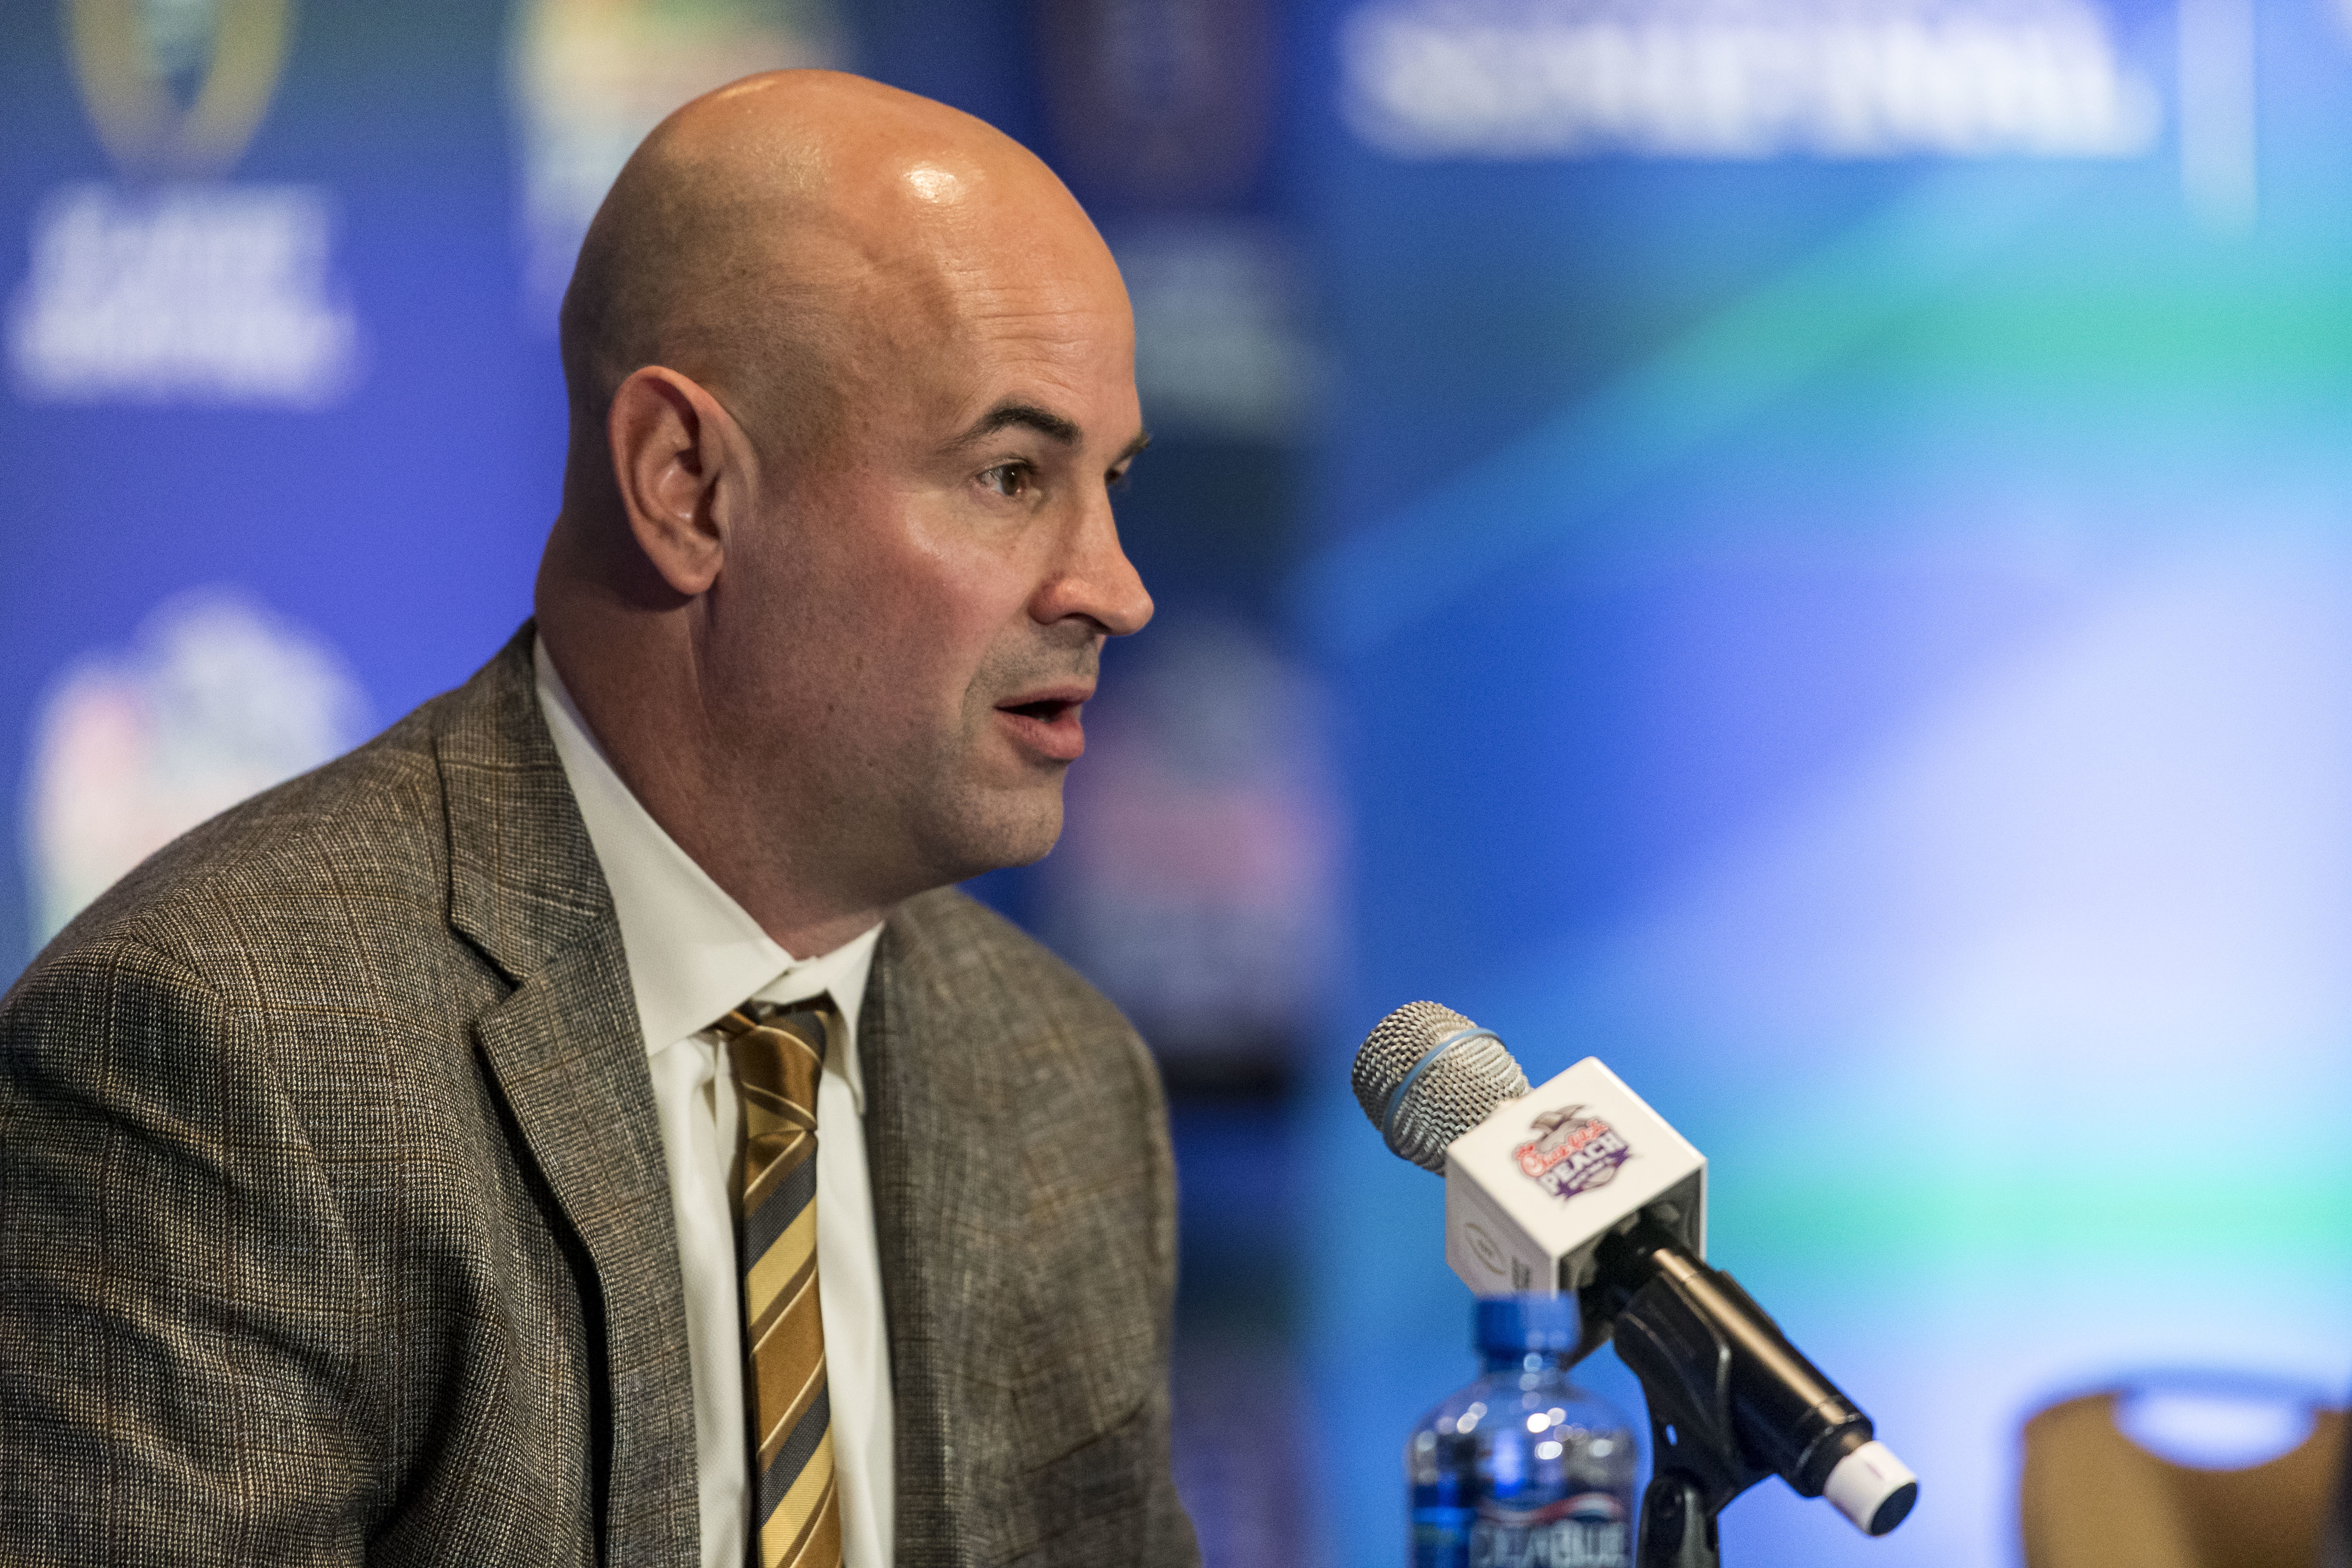 Alabama defensive coordinator Jeremy Pruitt talks with the media during the Alabama defensive press conference for the Peach Bowl, Tuesday, Dec. 27, 2016, at Hyatt Regency Atlanta in Atlanta, Ga. (AP Photo/Alabama Media Group, Vasha Hunt)